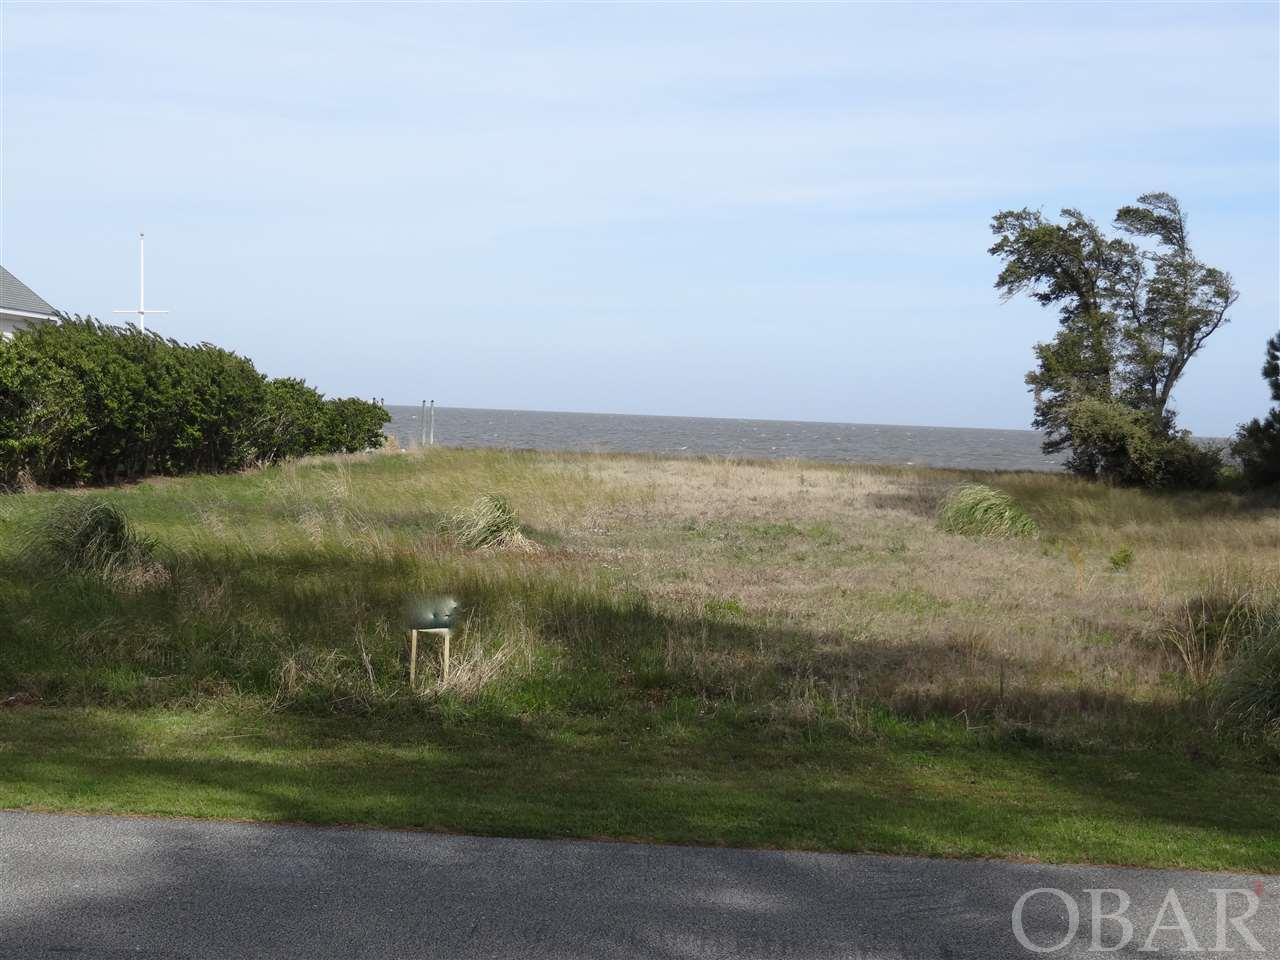 154 Fort Hugar Way,Manteo,NC 27954,Lots/land,Fort Hugar Way,92007